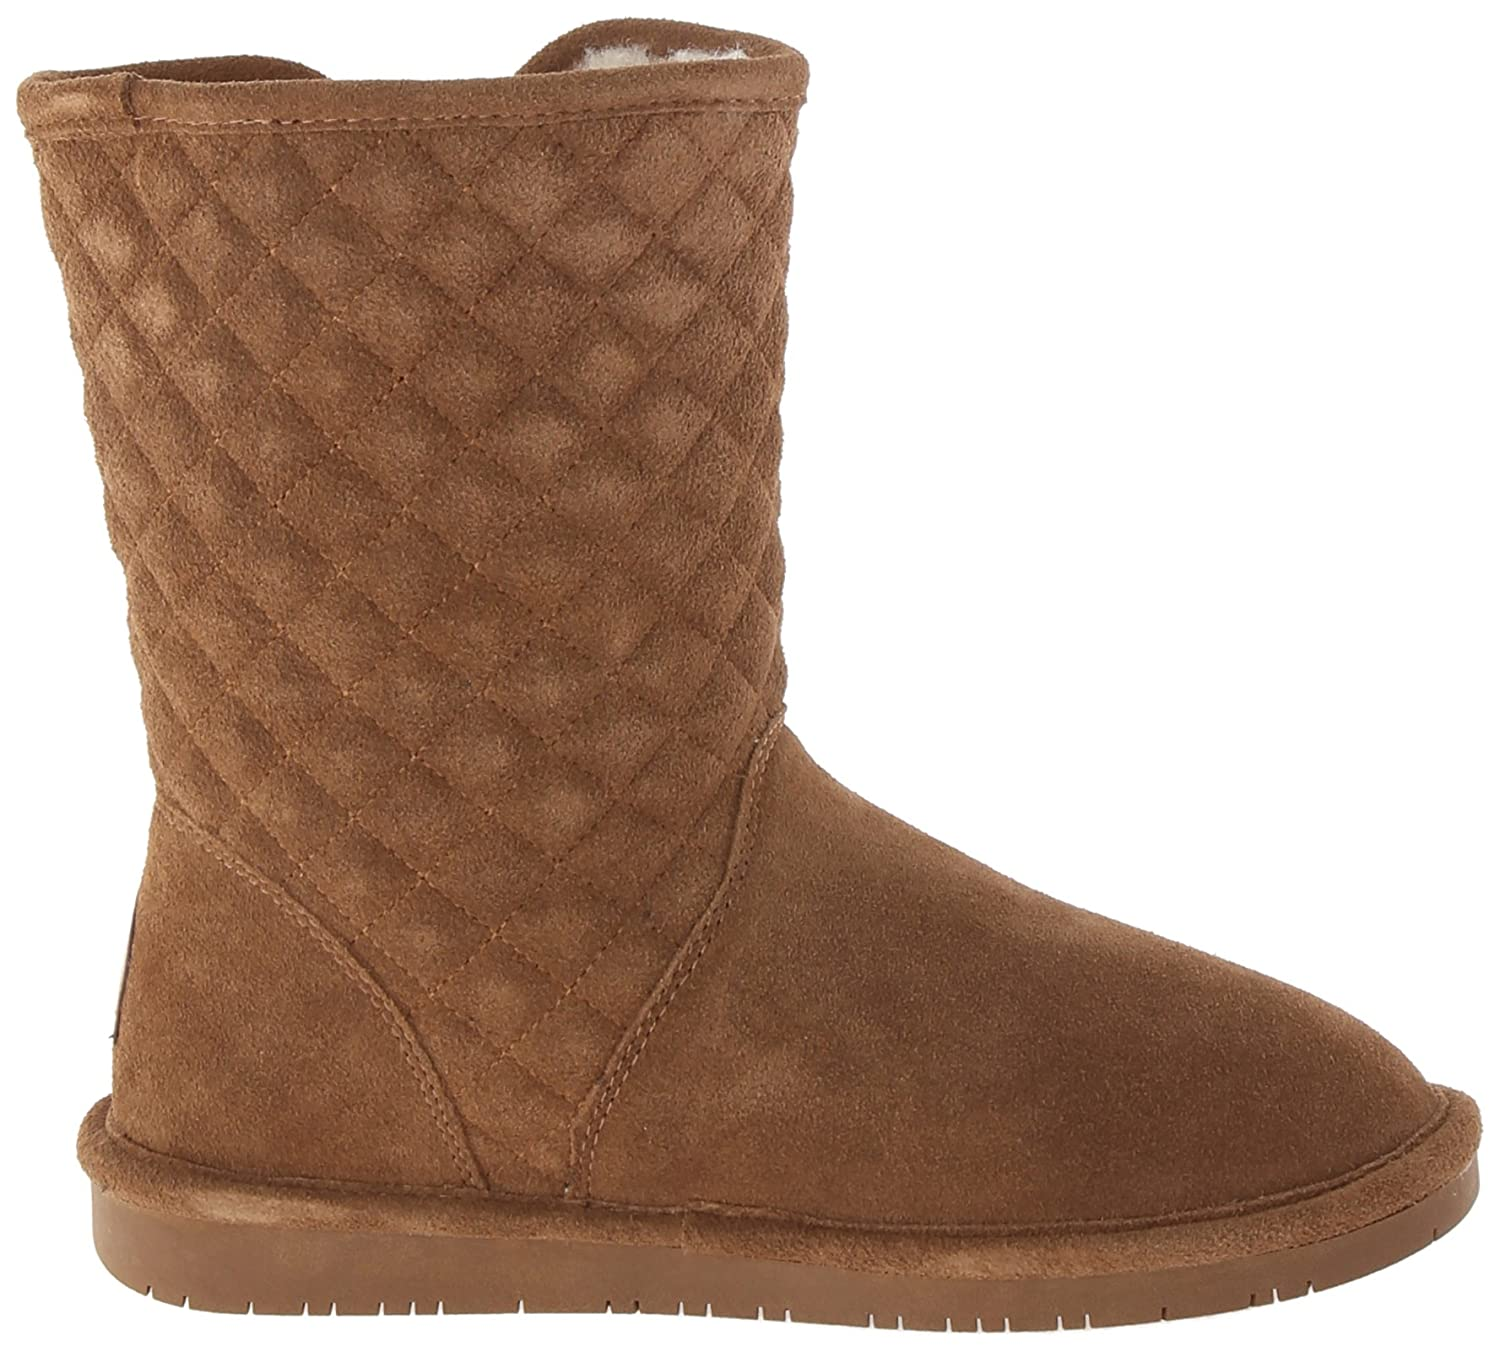 Leigh Womens Fashion Short Outdoor Boots